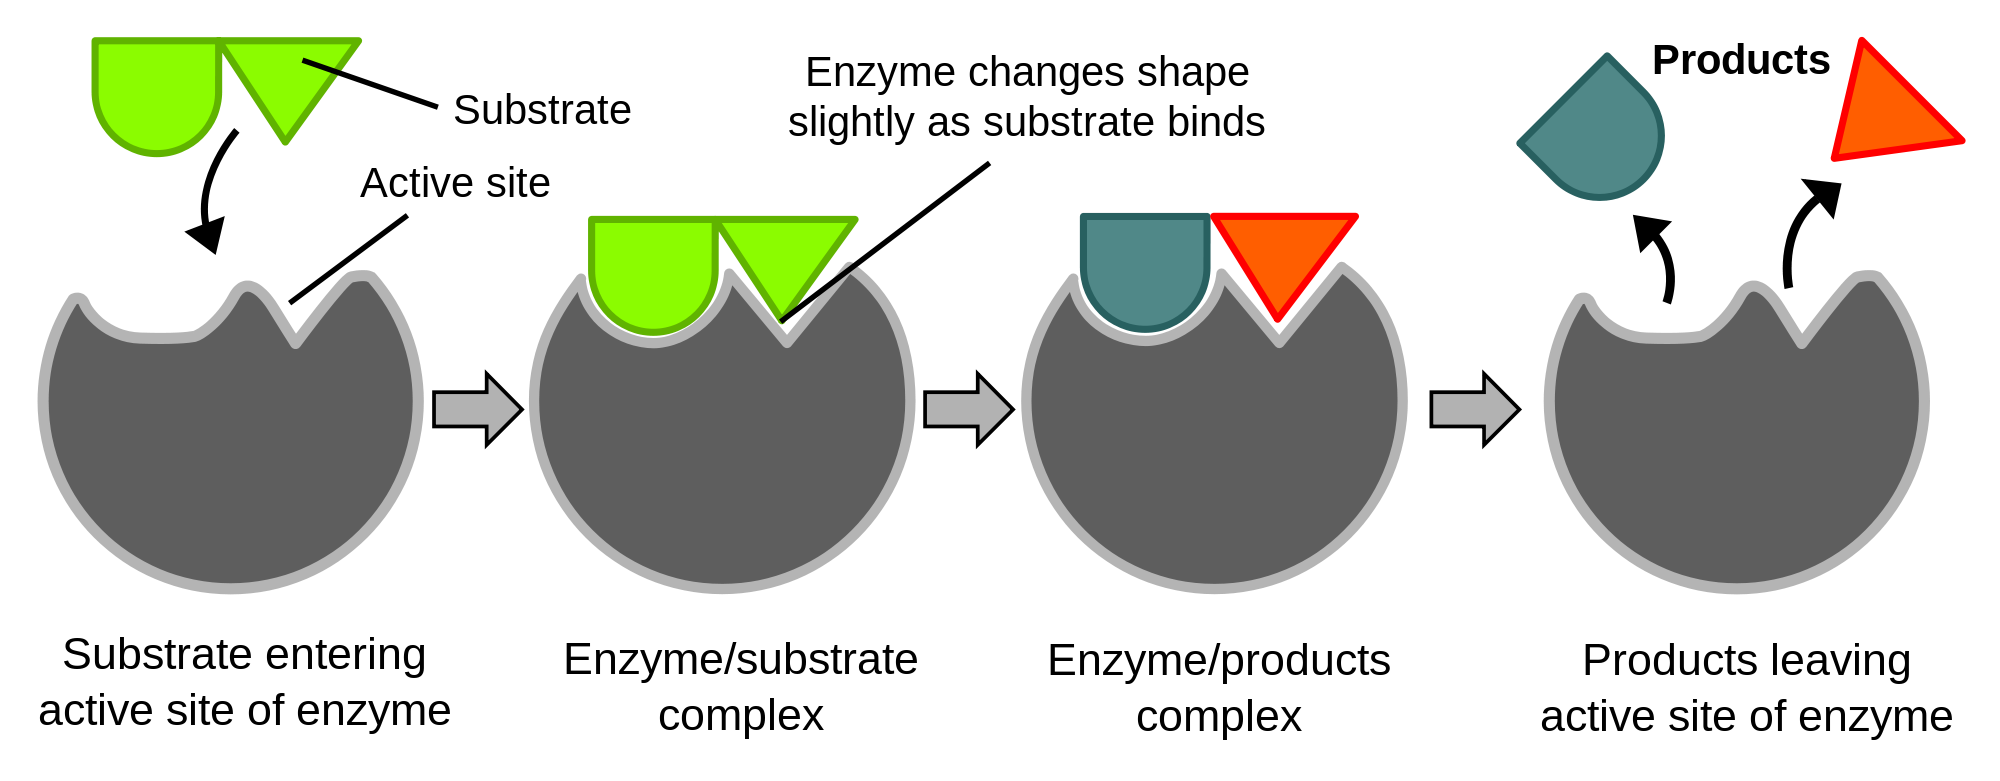 (http://upload.wikimedia.org/wikipedia/commons/thumb/2/24/Induced_fit_diagram.svg/2000px-Induced_fit_diagram.svg.png)